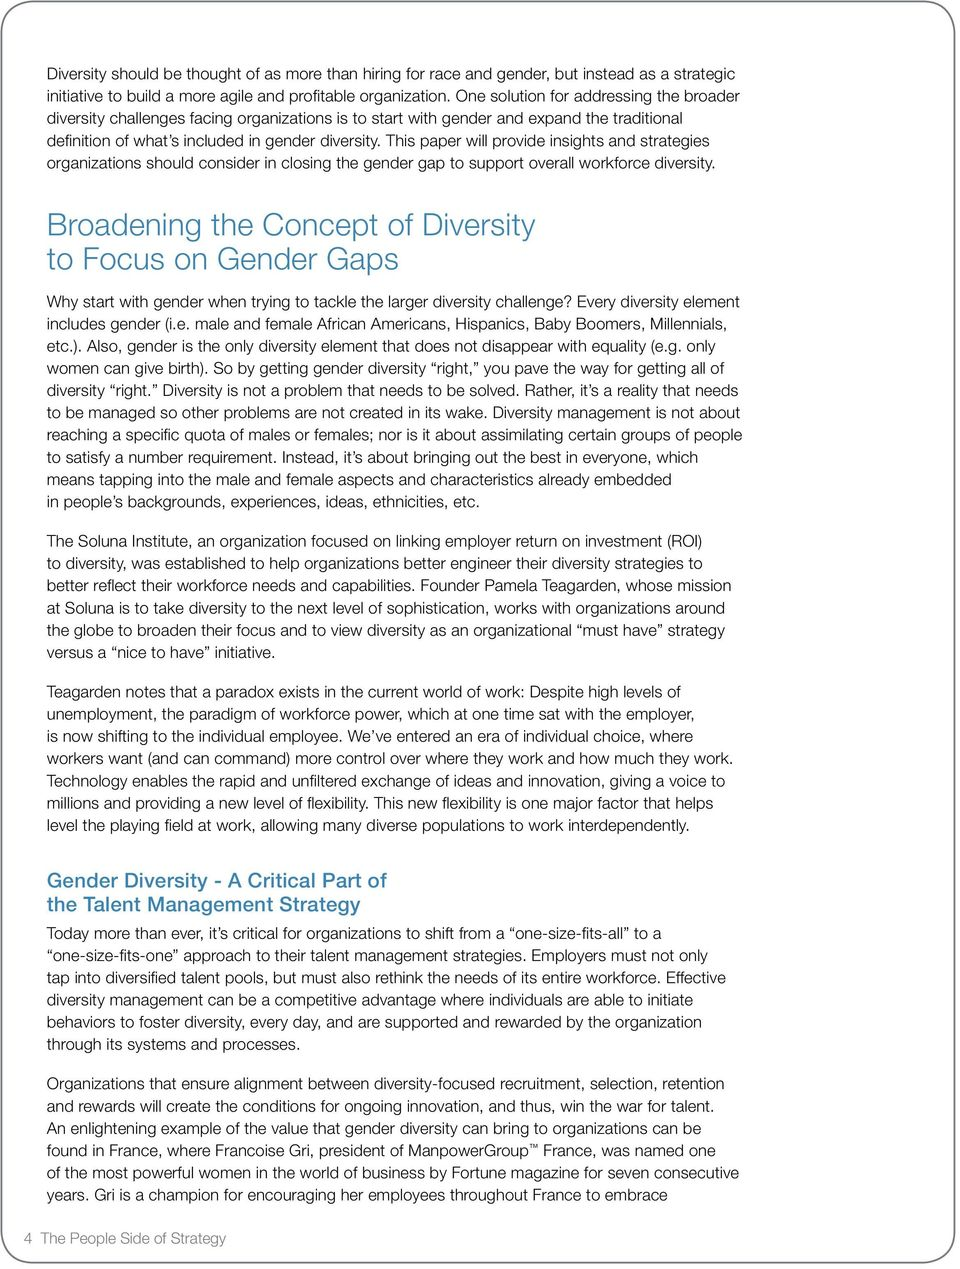 This paper will provide insights and strategies organizations should consider in closing the gender gap to support overall workforce diversity.